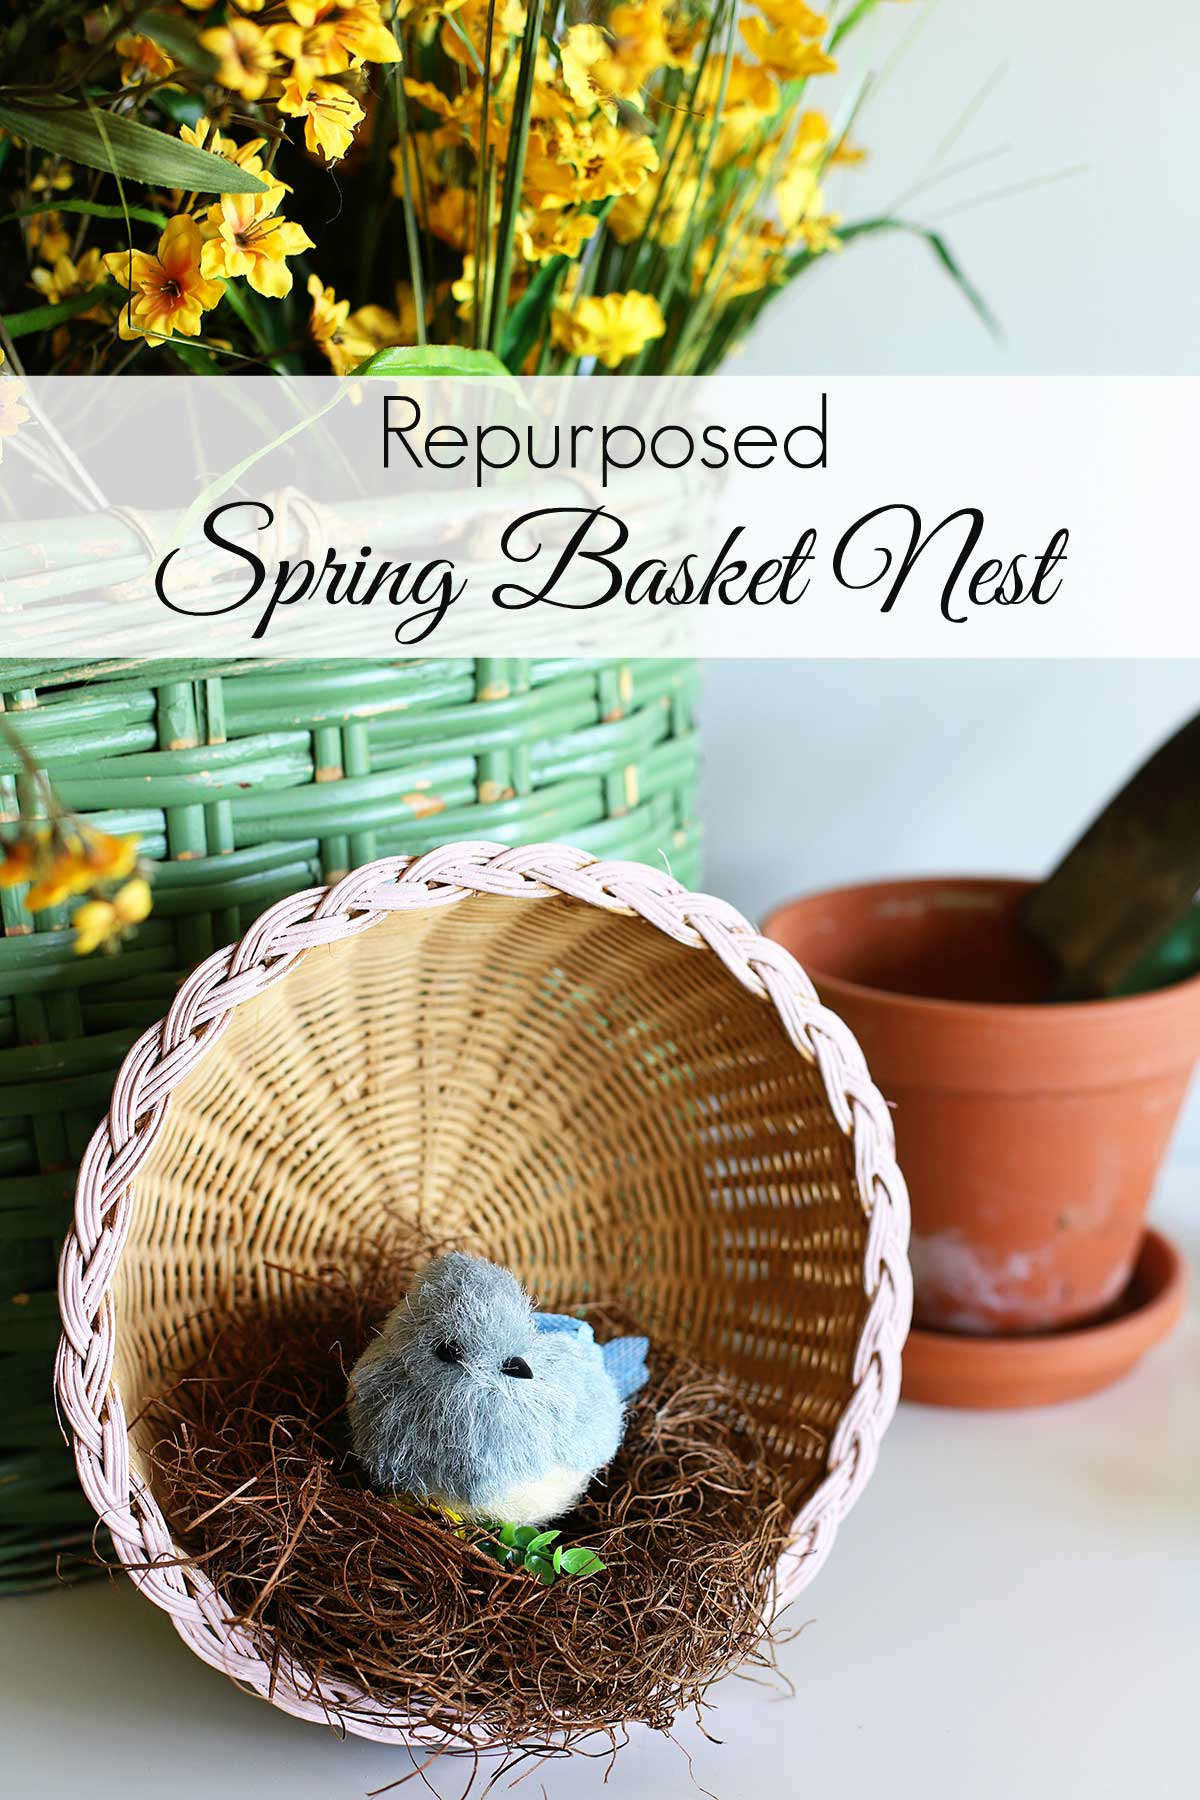 Spring bird nest from repurposed thrift store basket